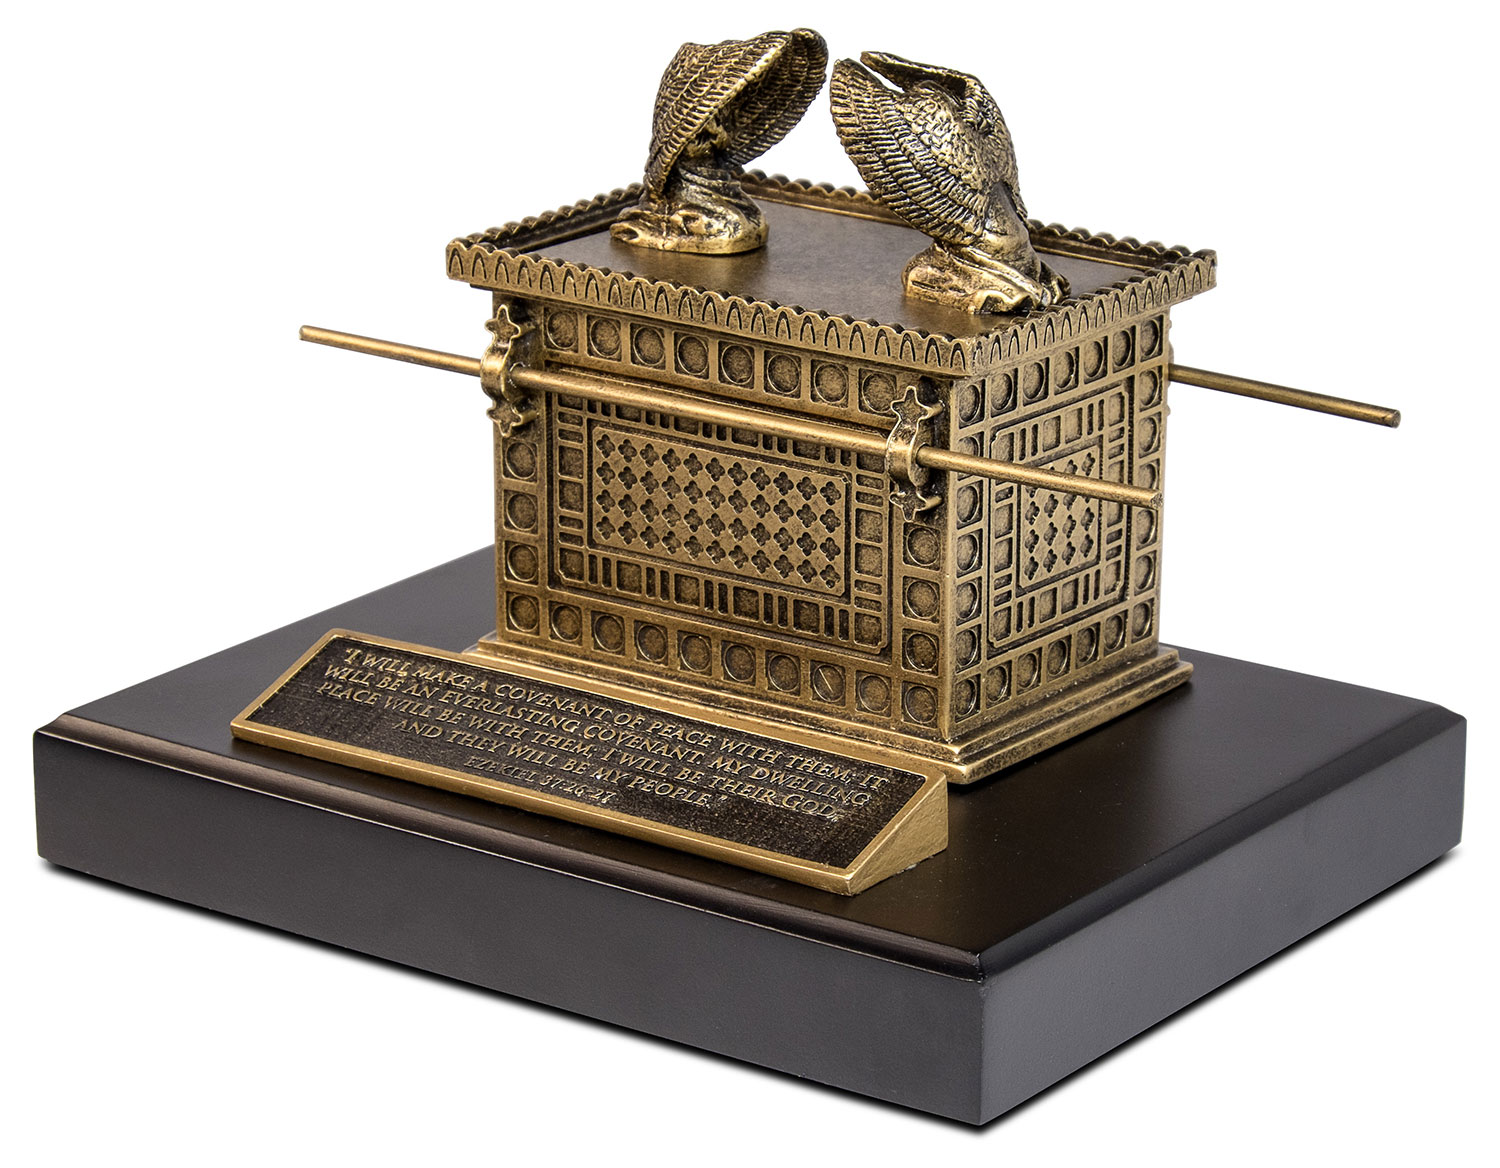 Ark of the Covenant Sculpture